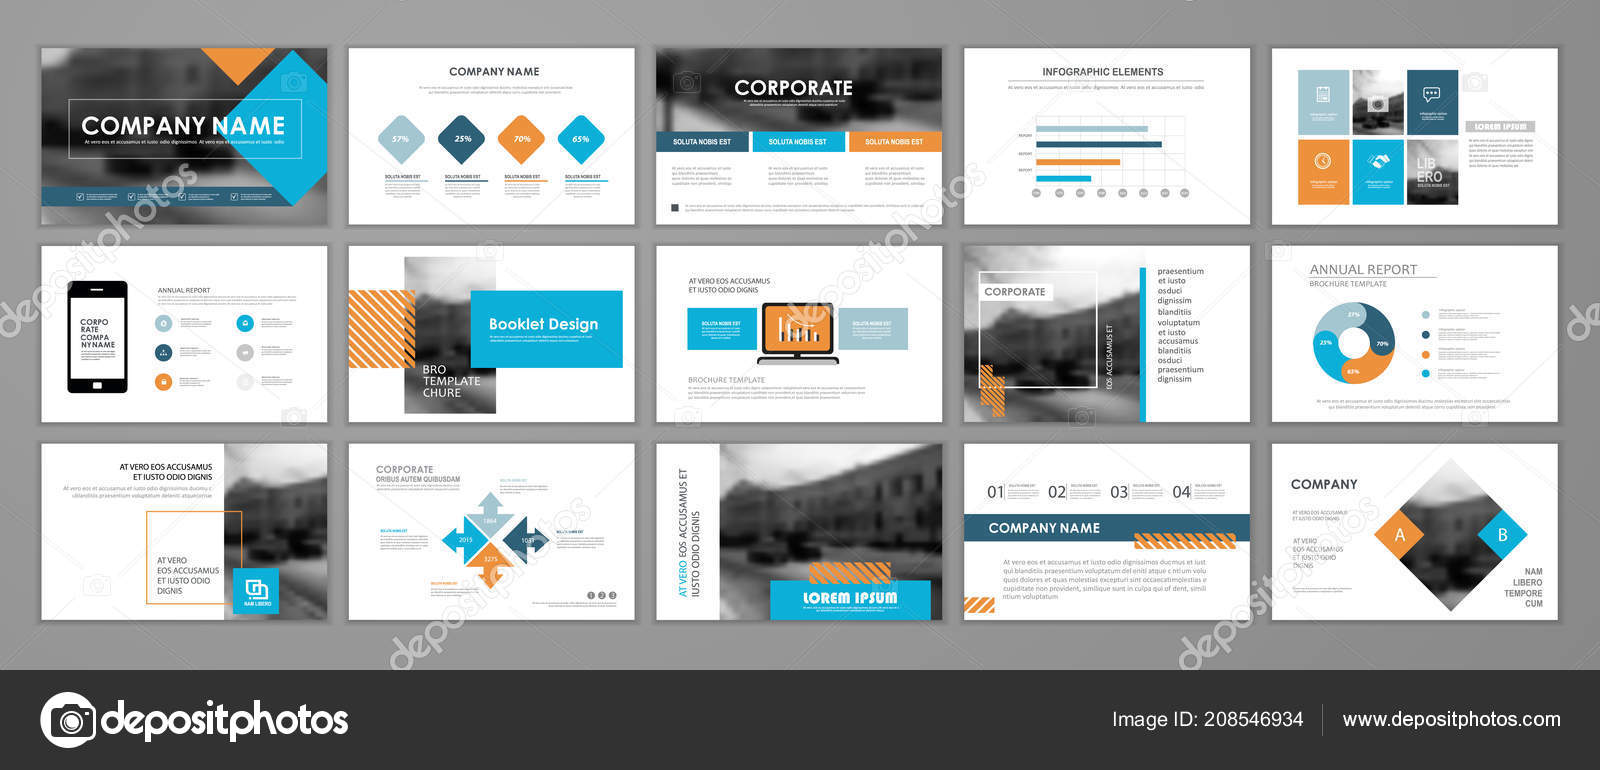 modern presentation slide templates infographic elements template